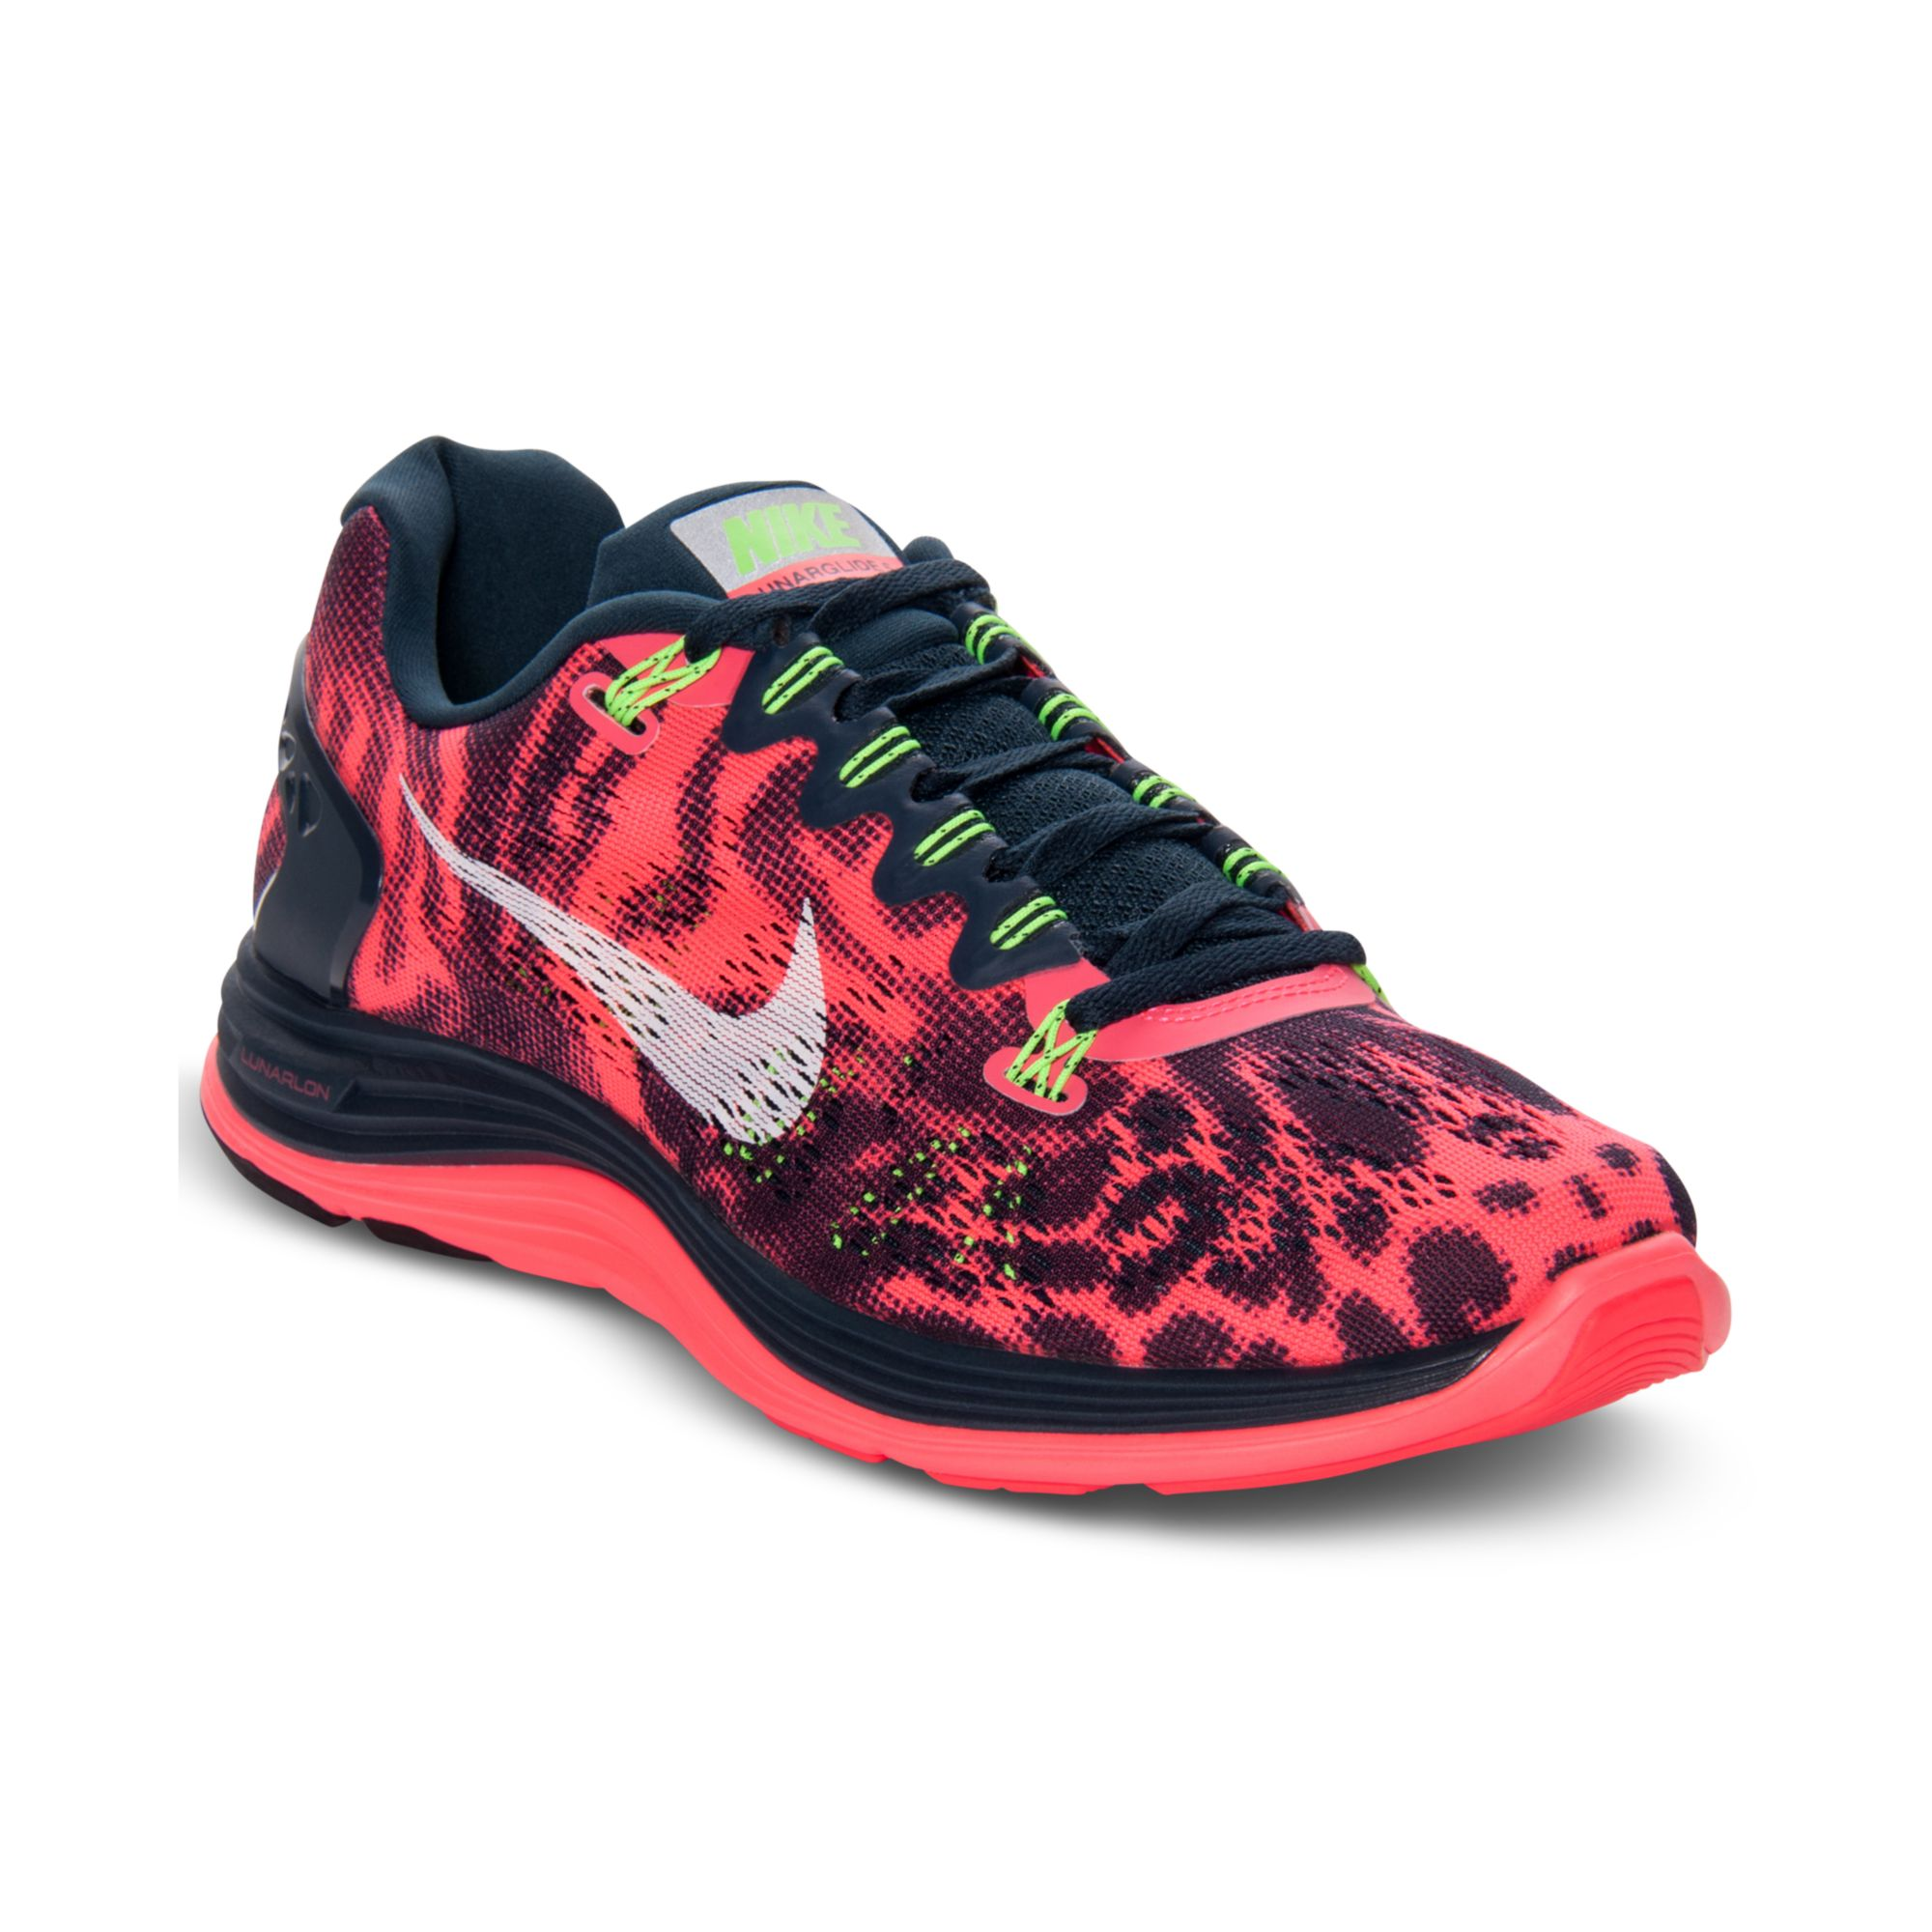 7b2ea69177c ... low cost lyst nike lunarglide 5 graphic running sneakers in pink for men  3e470 e416e